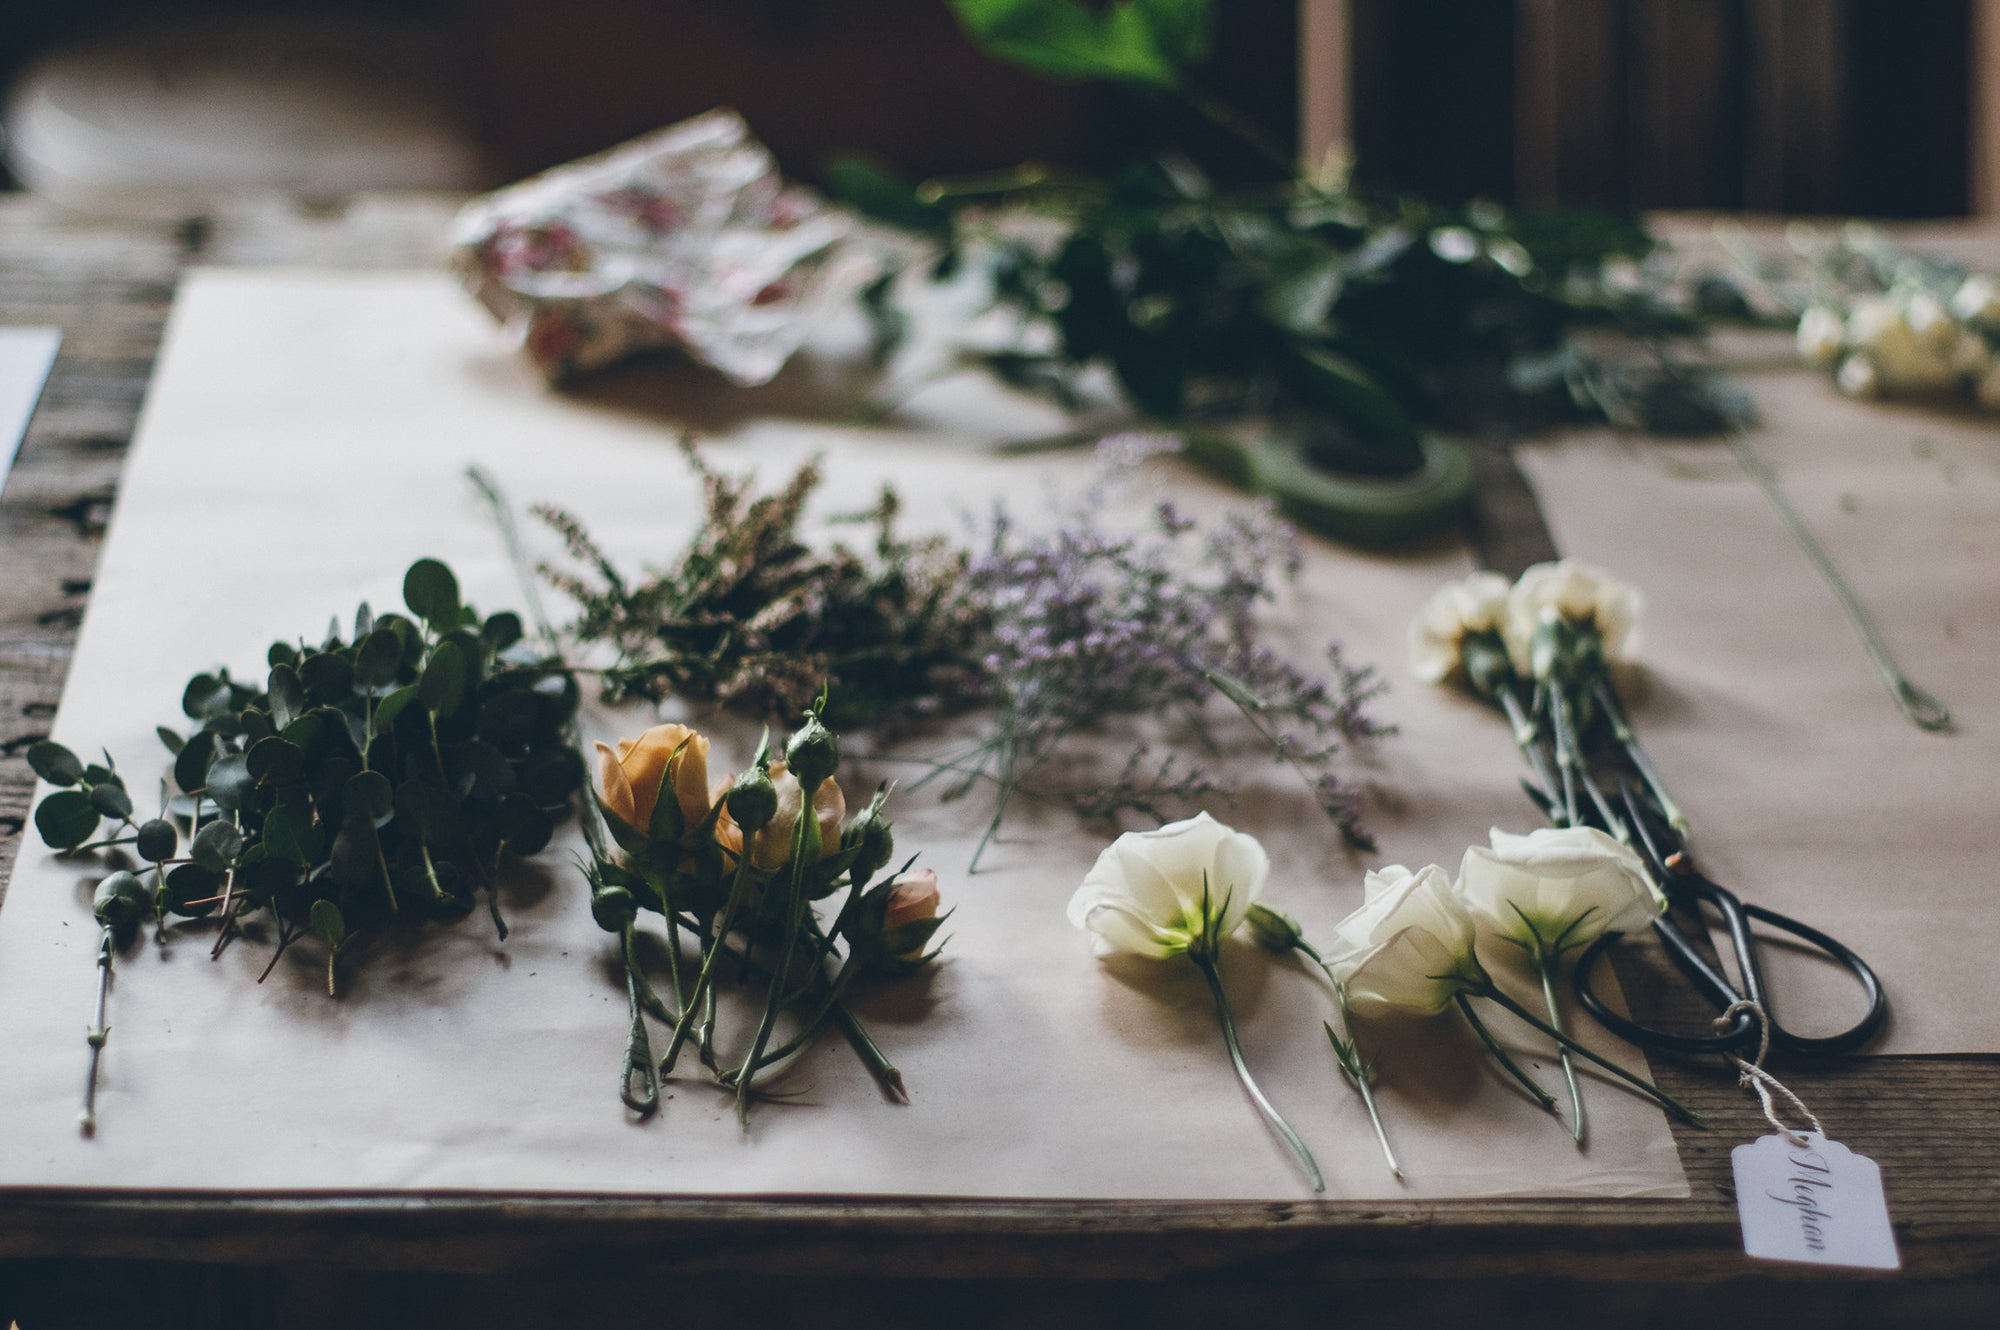 Floristry 101 (Beginner) April 14th